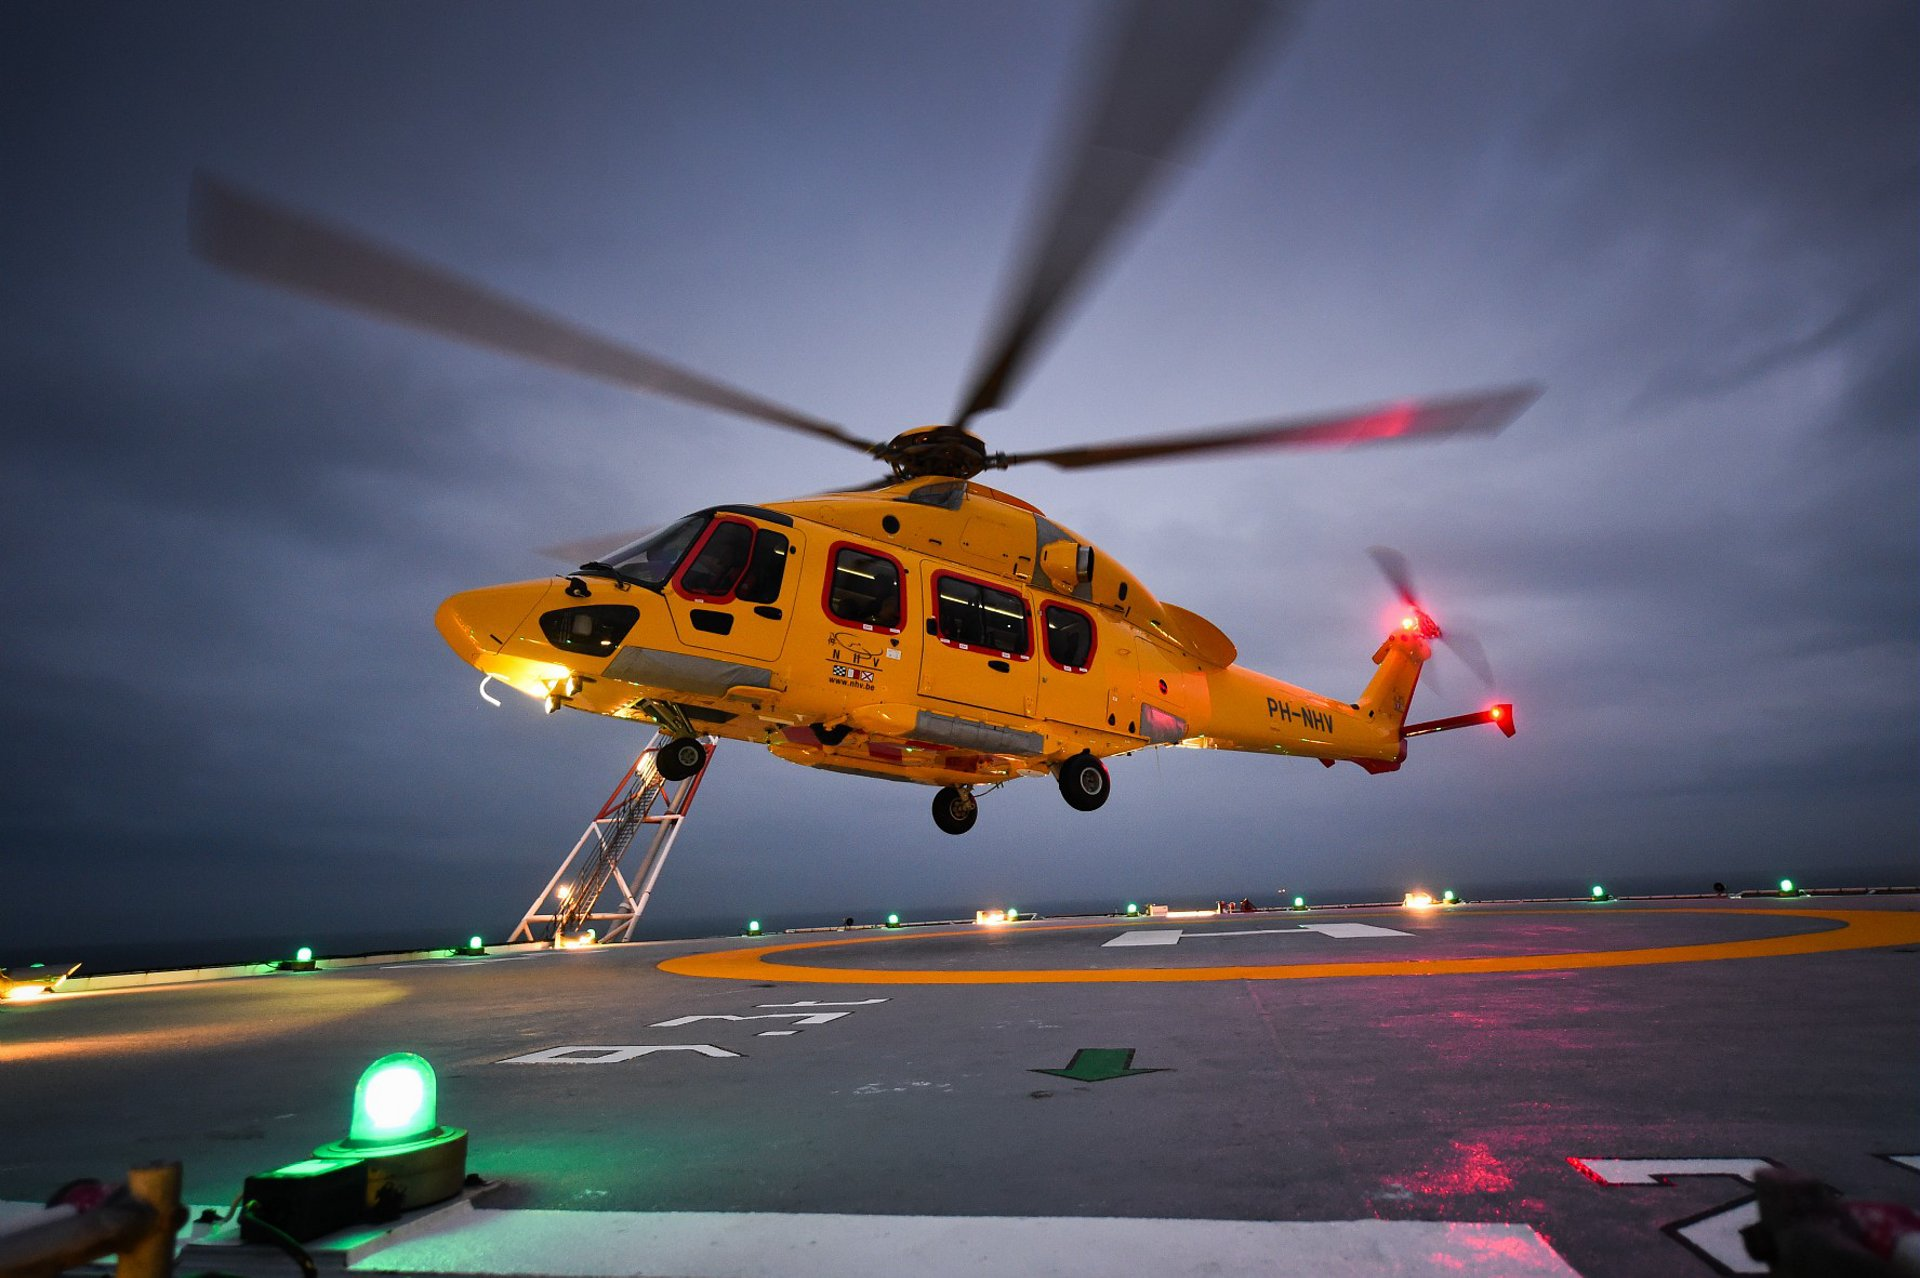 An Airbus H175 helicopter hovers over a helipad with dark skies above.